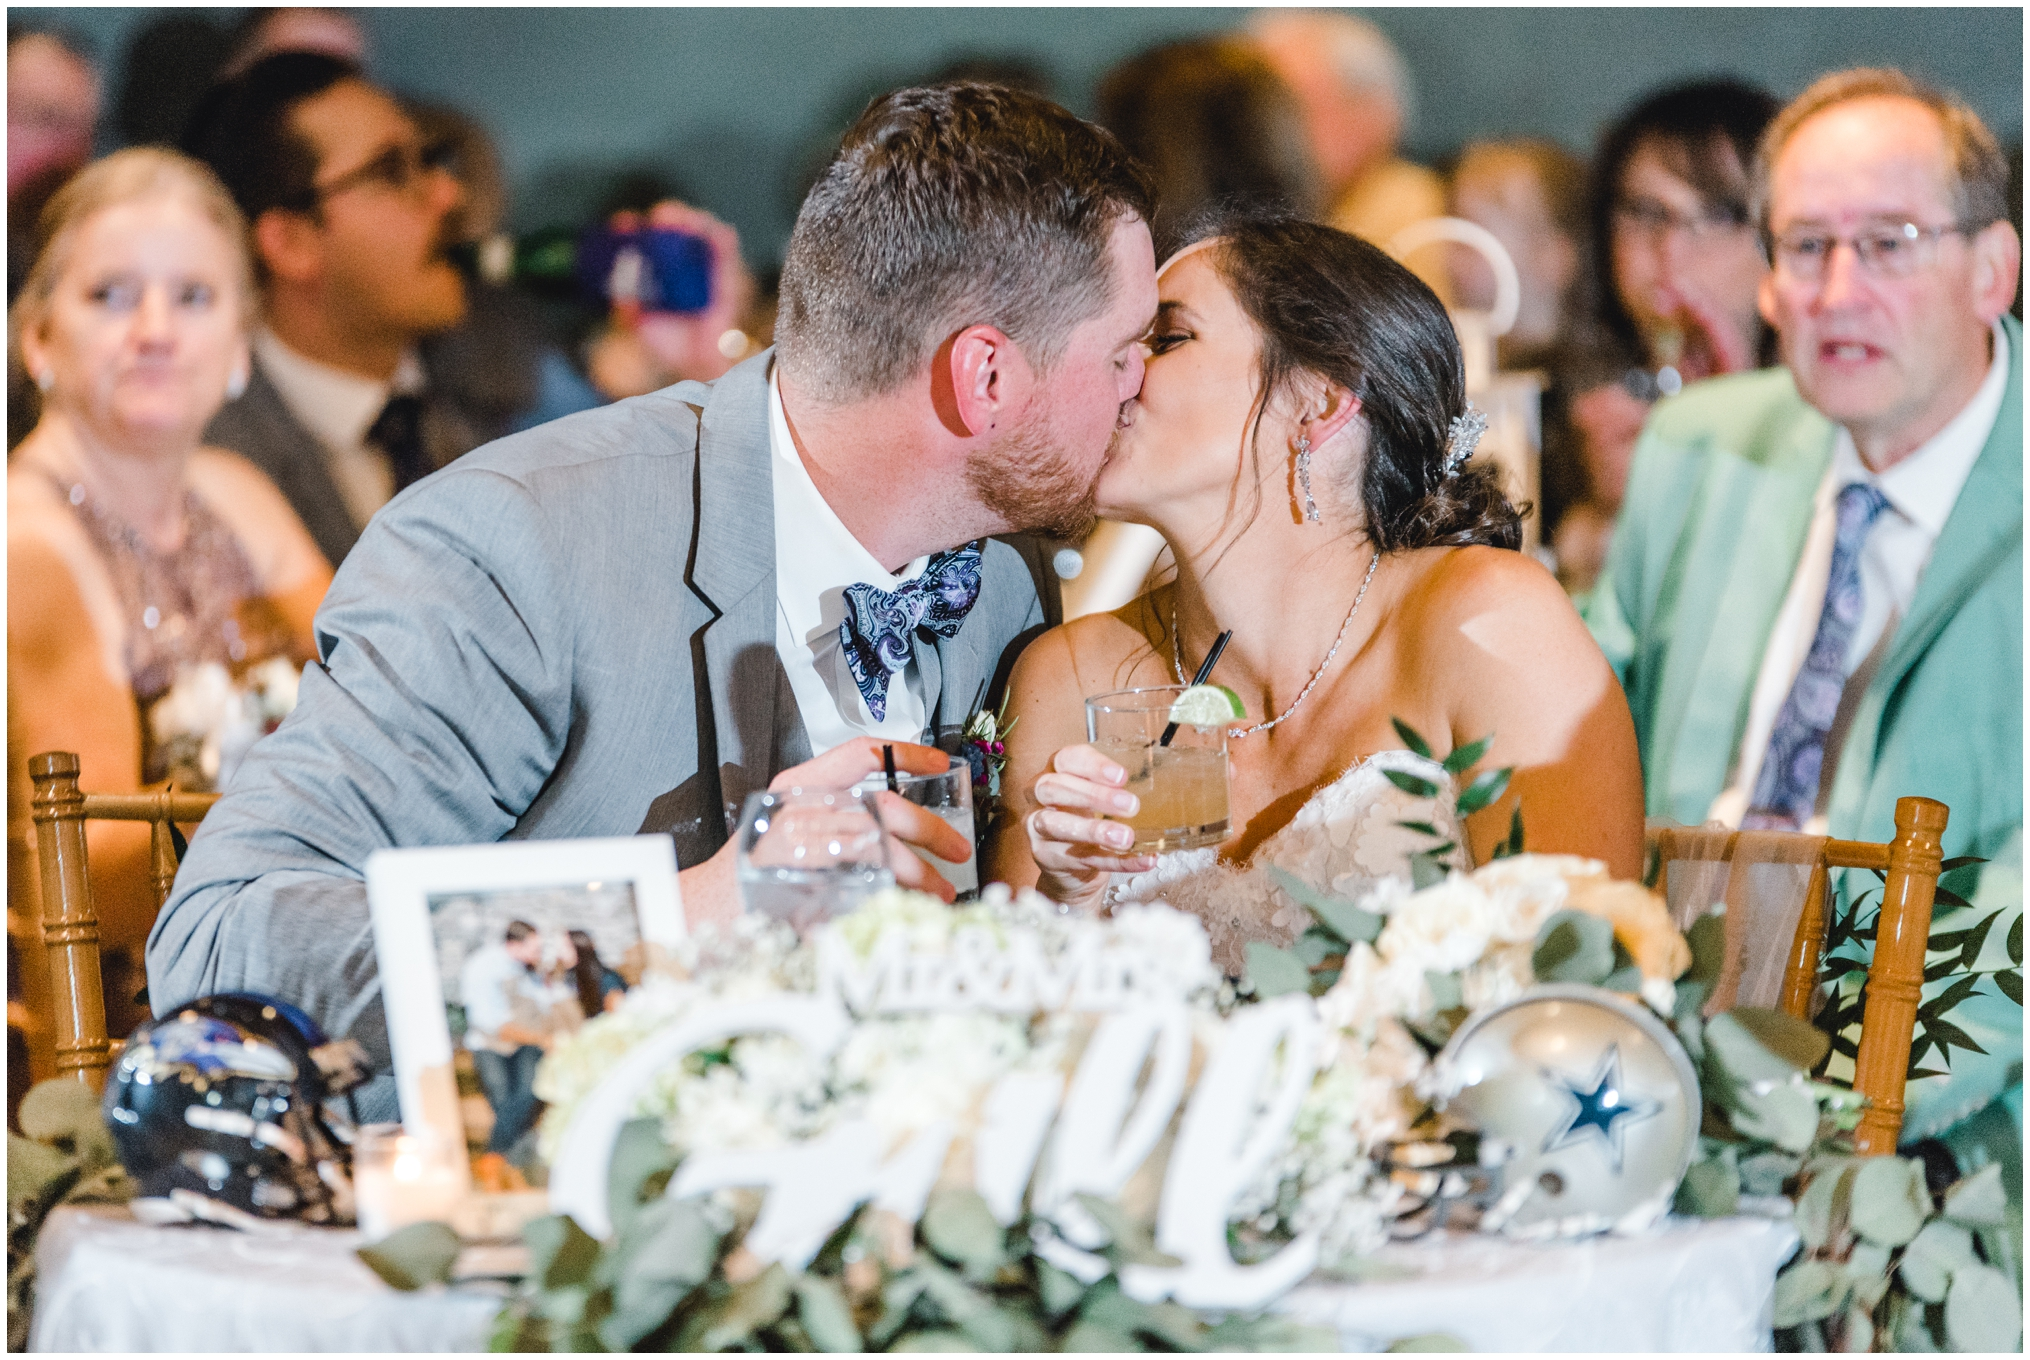 Krista Brackin Photography | April Wedding at The Carriage House at Rockwood Park_0112.jpg